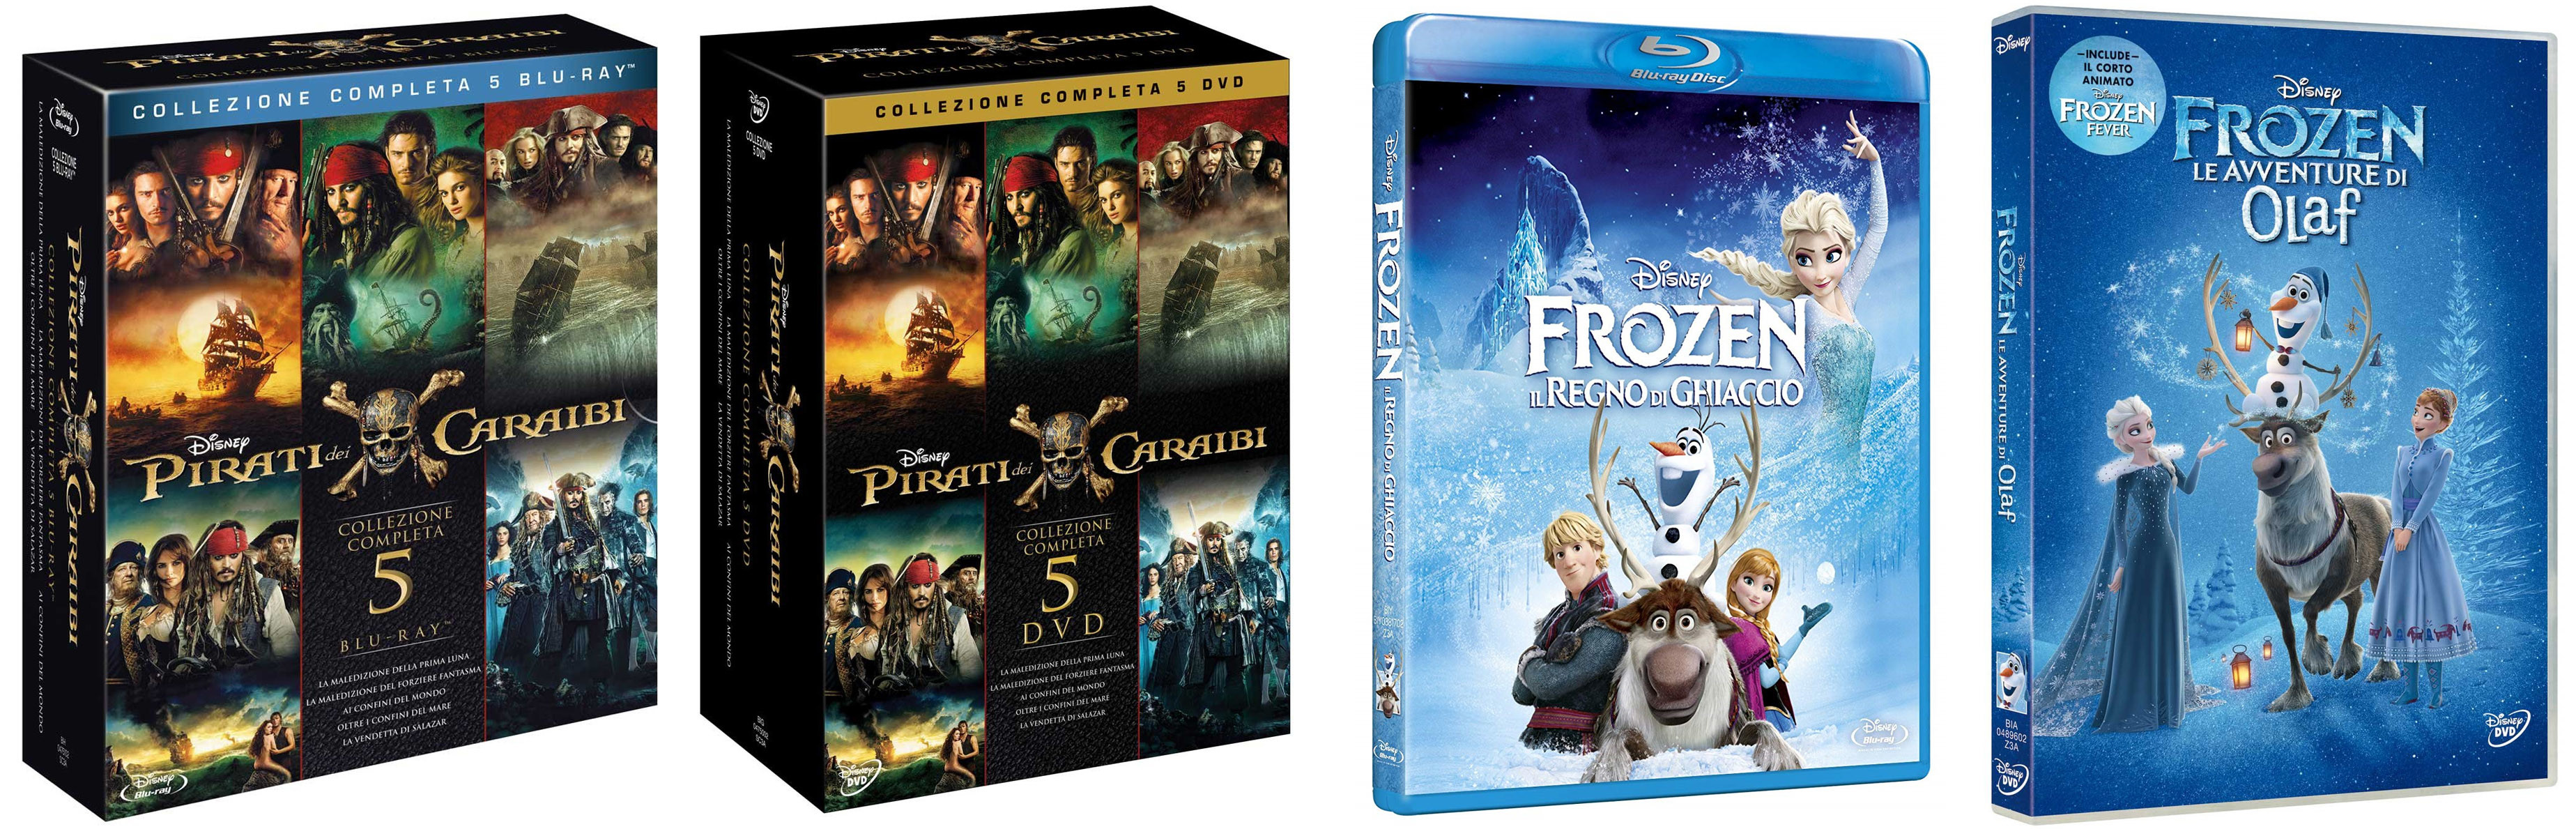 Black Friday Amazon 2019 Disney offerte Blu-ray e Dvd